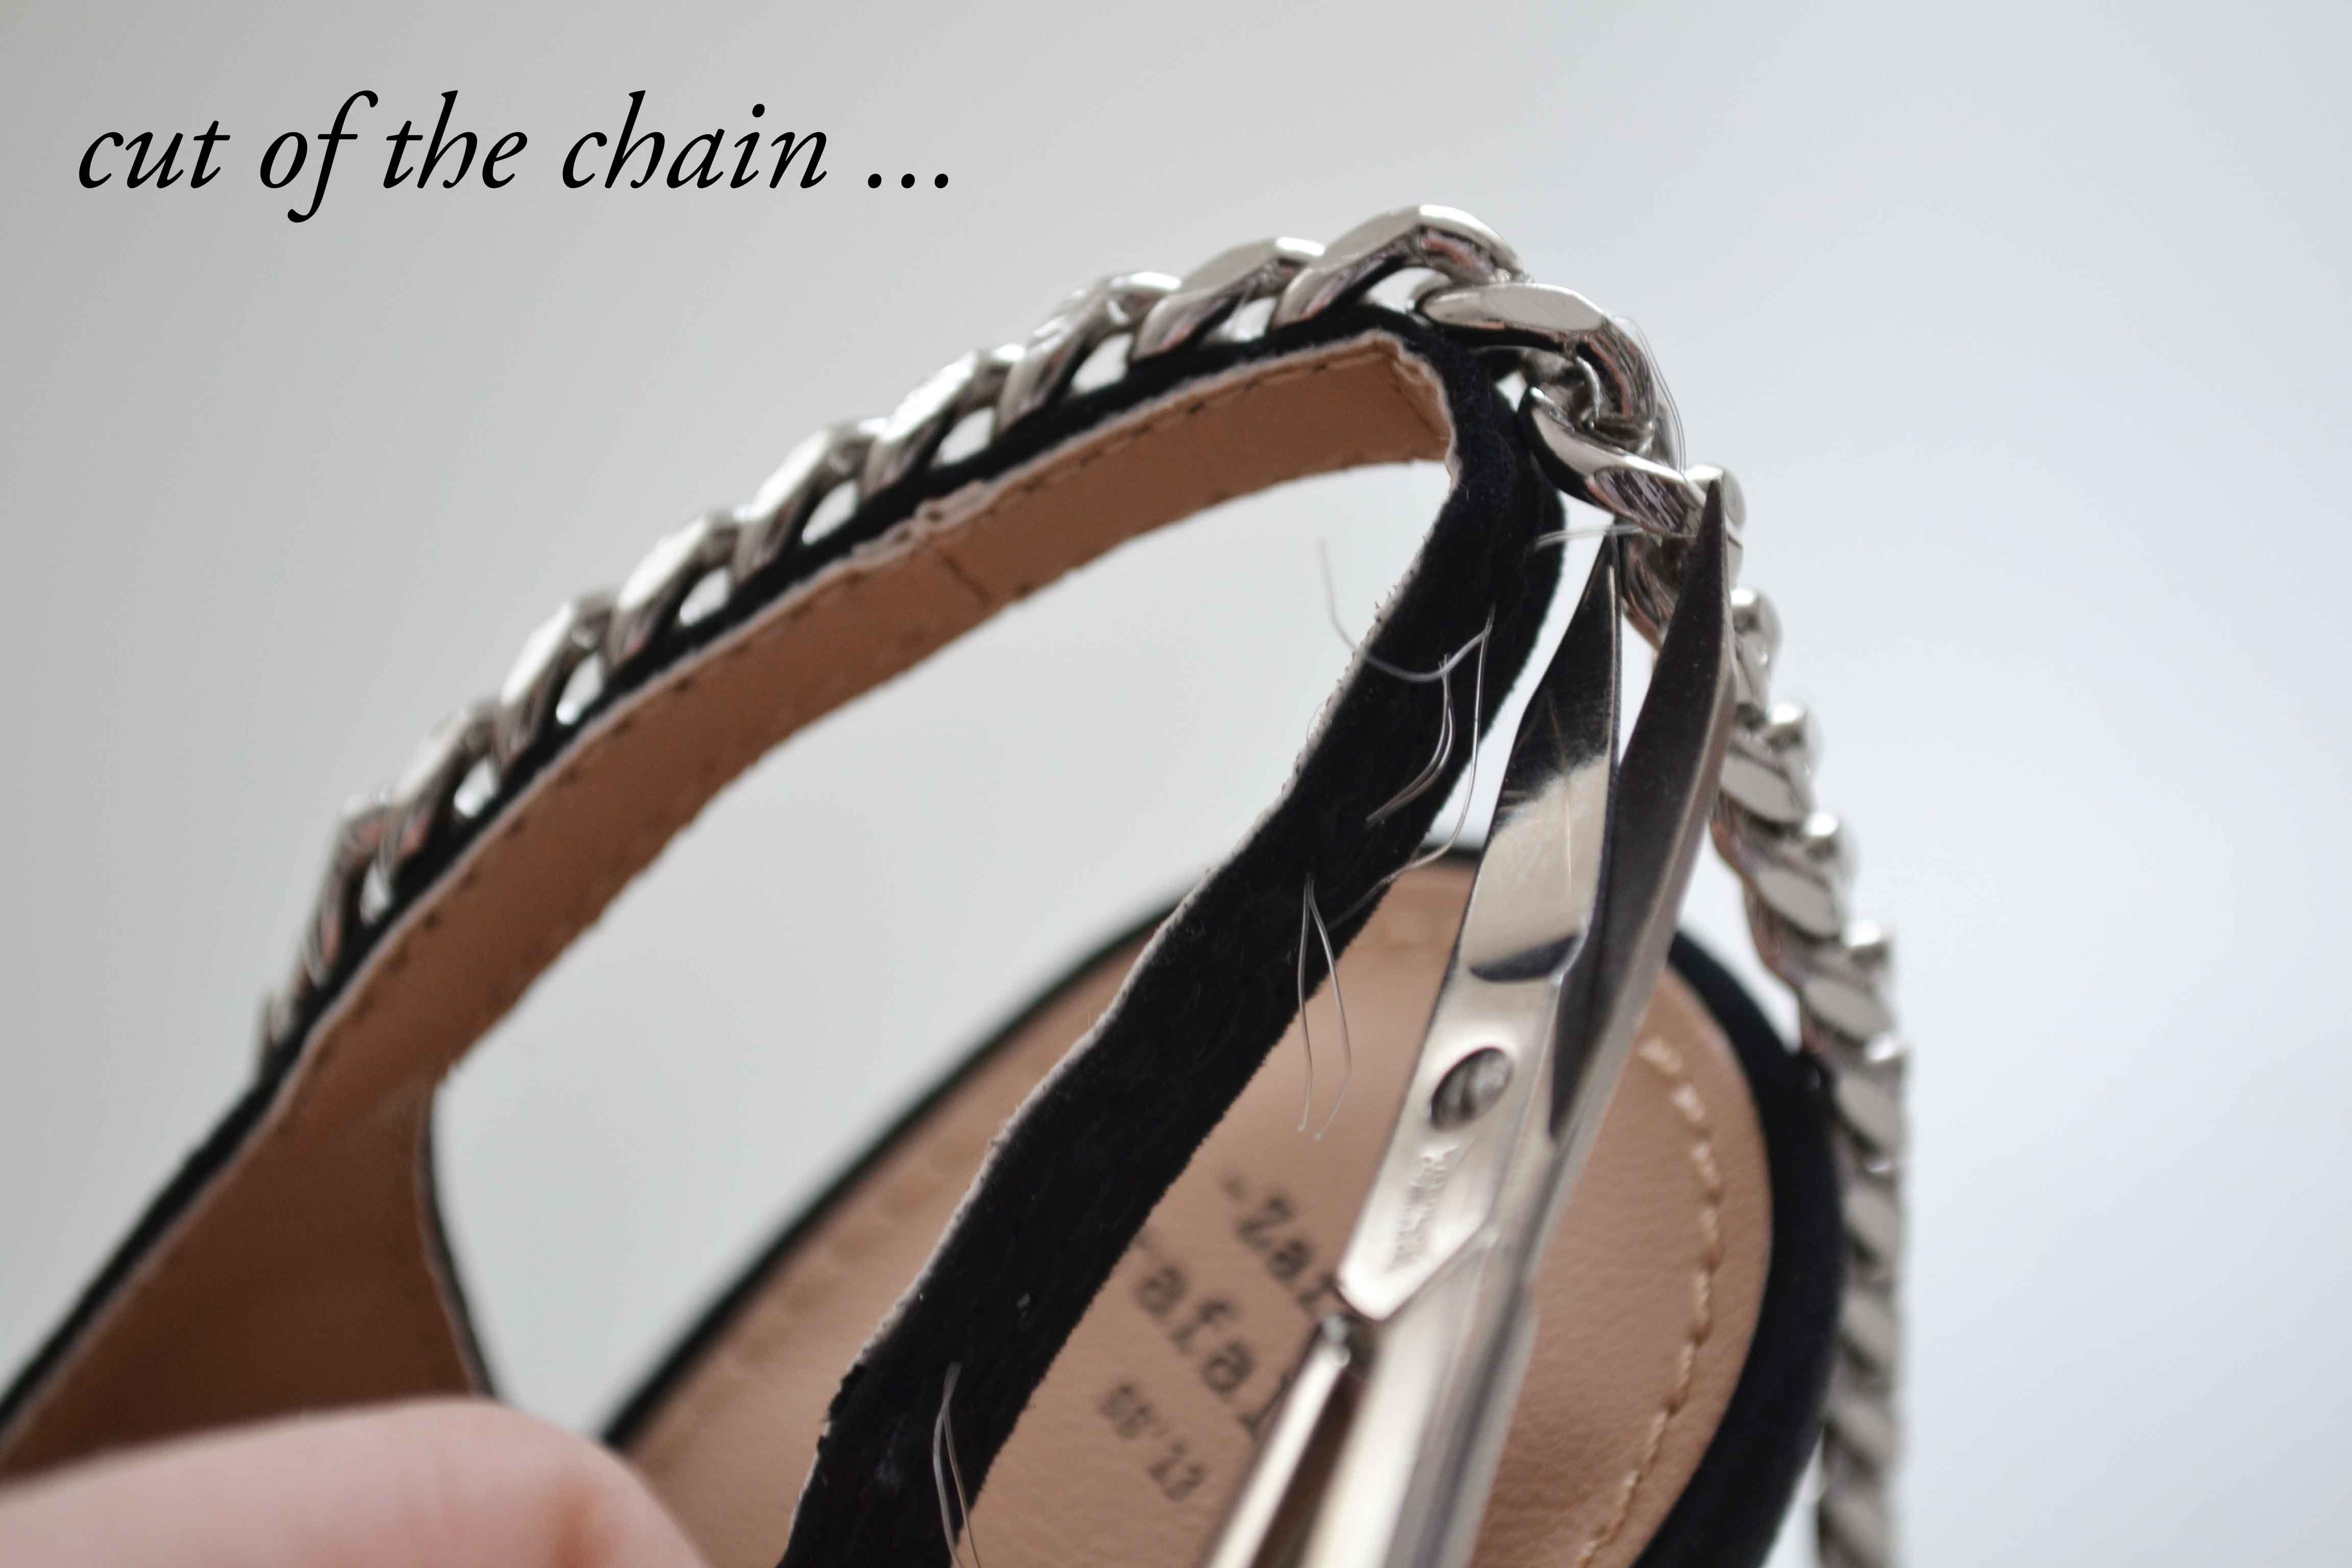 cut of the chain